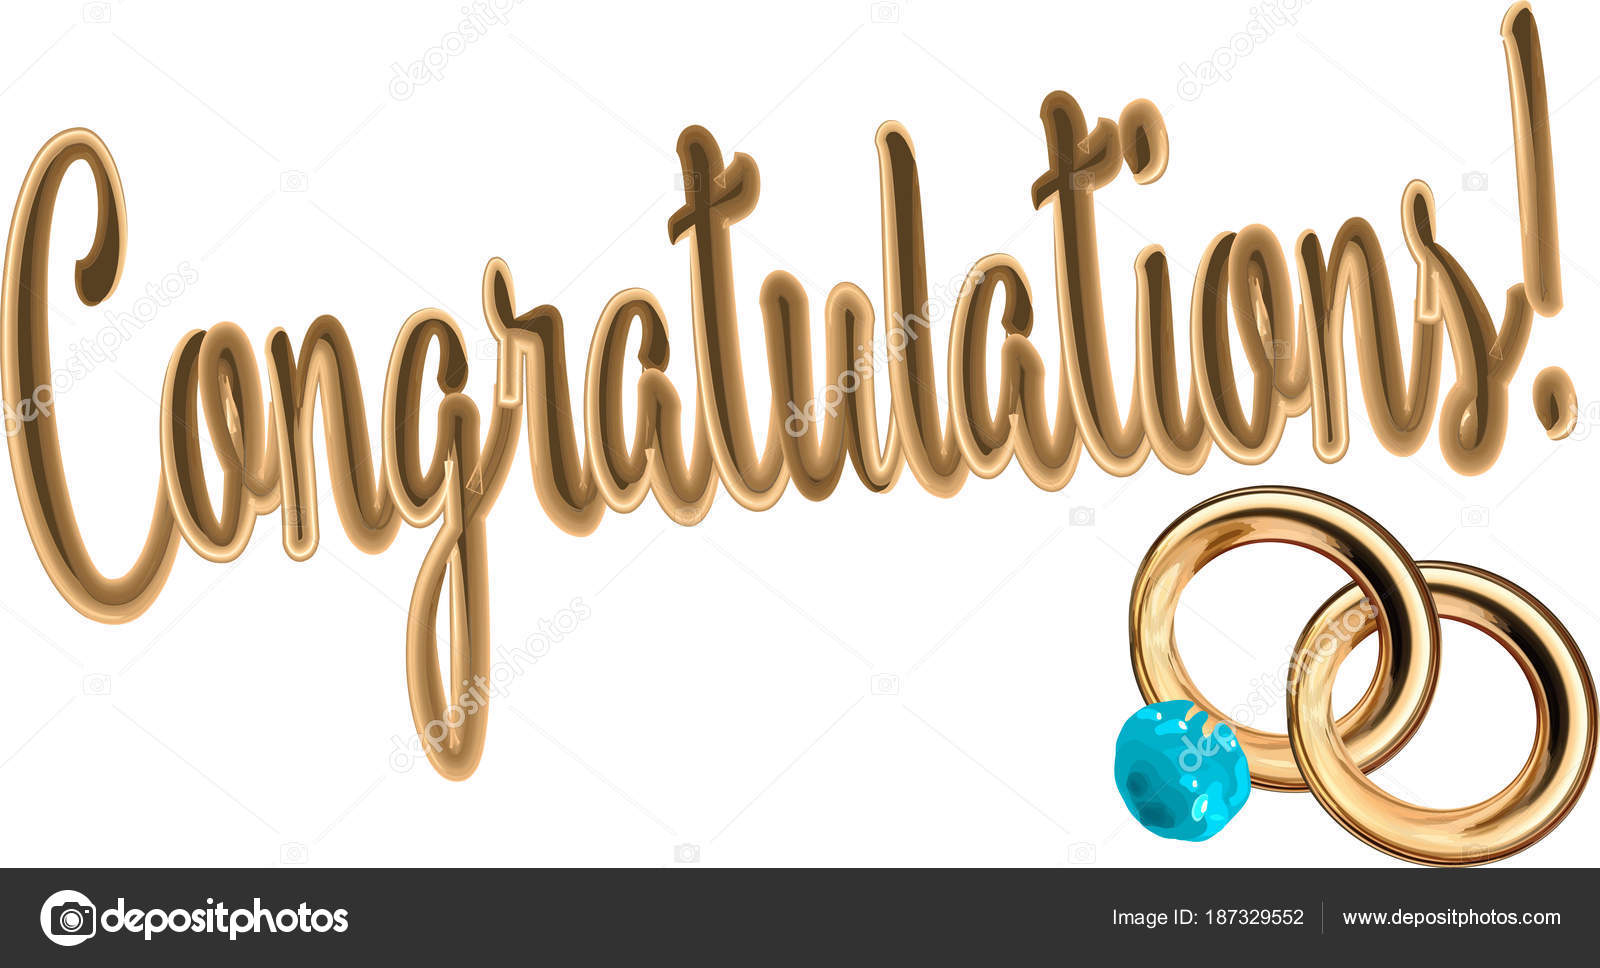 Vector Inscription Congratulations Gold Letters White Background